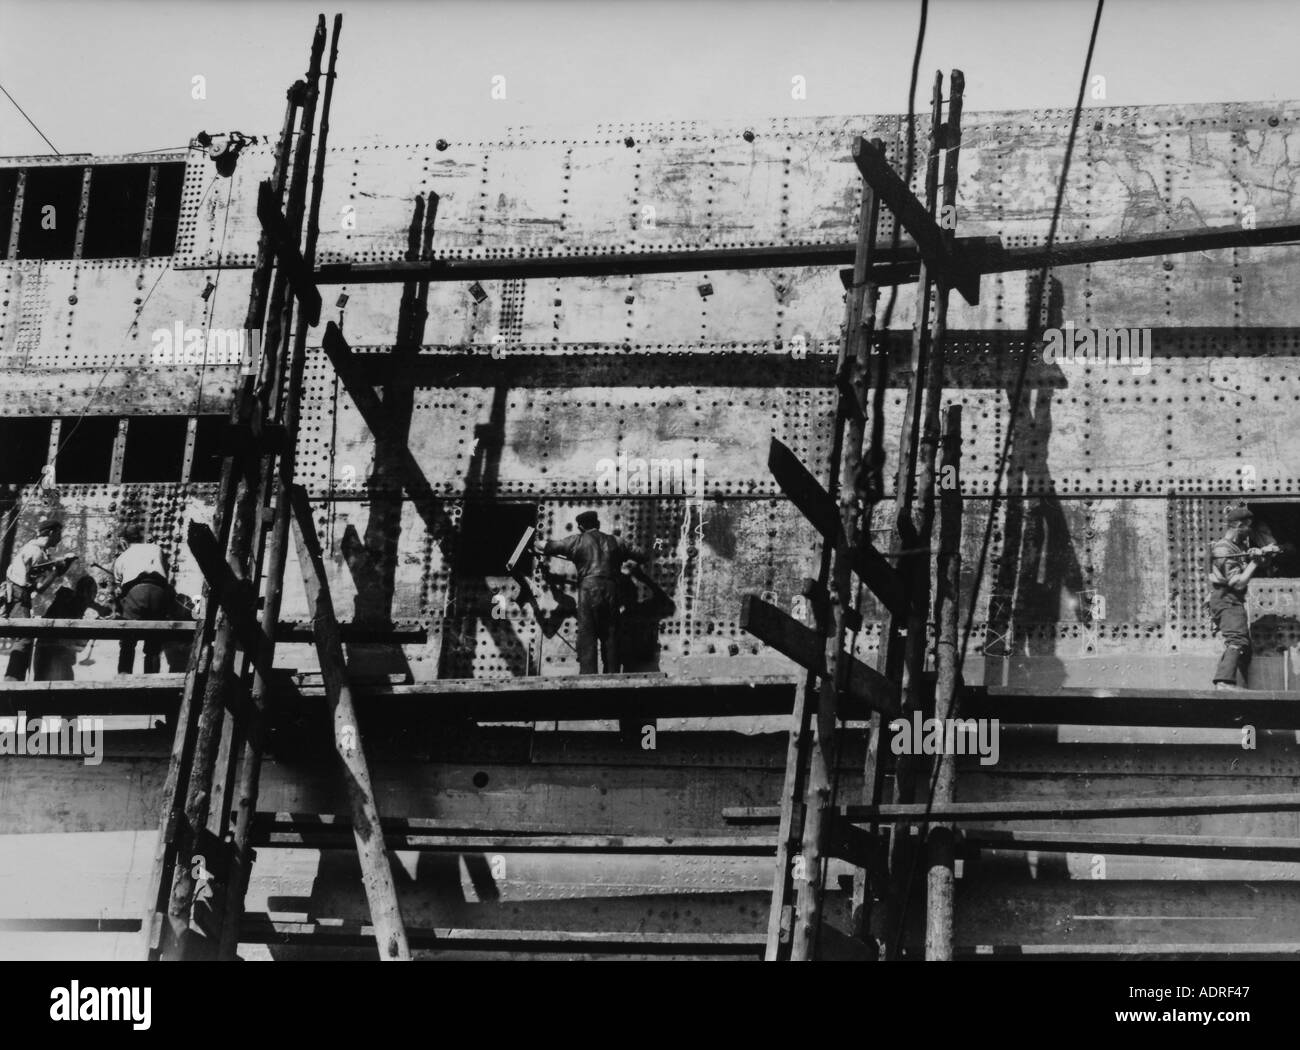 UK Scotland Greenock Shipyard of the 1890 s building the SS Isis fitting the hull plates - Stock Image